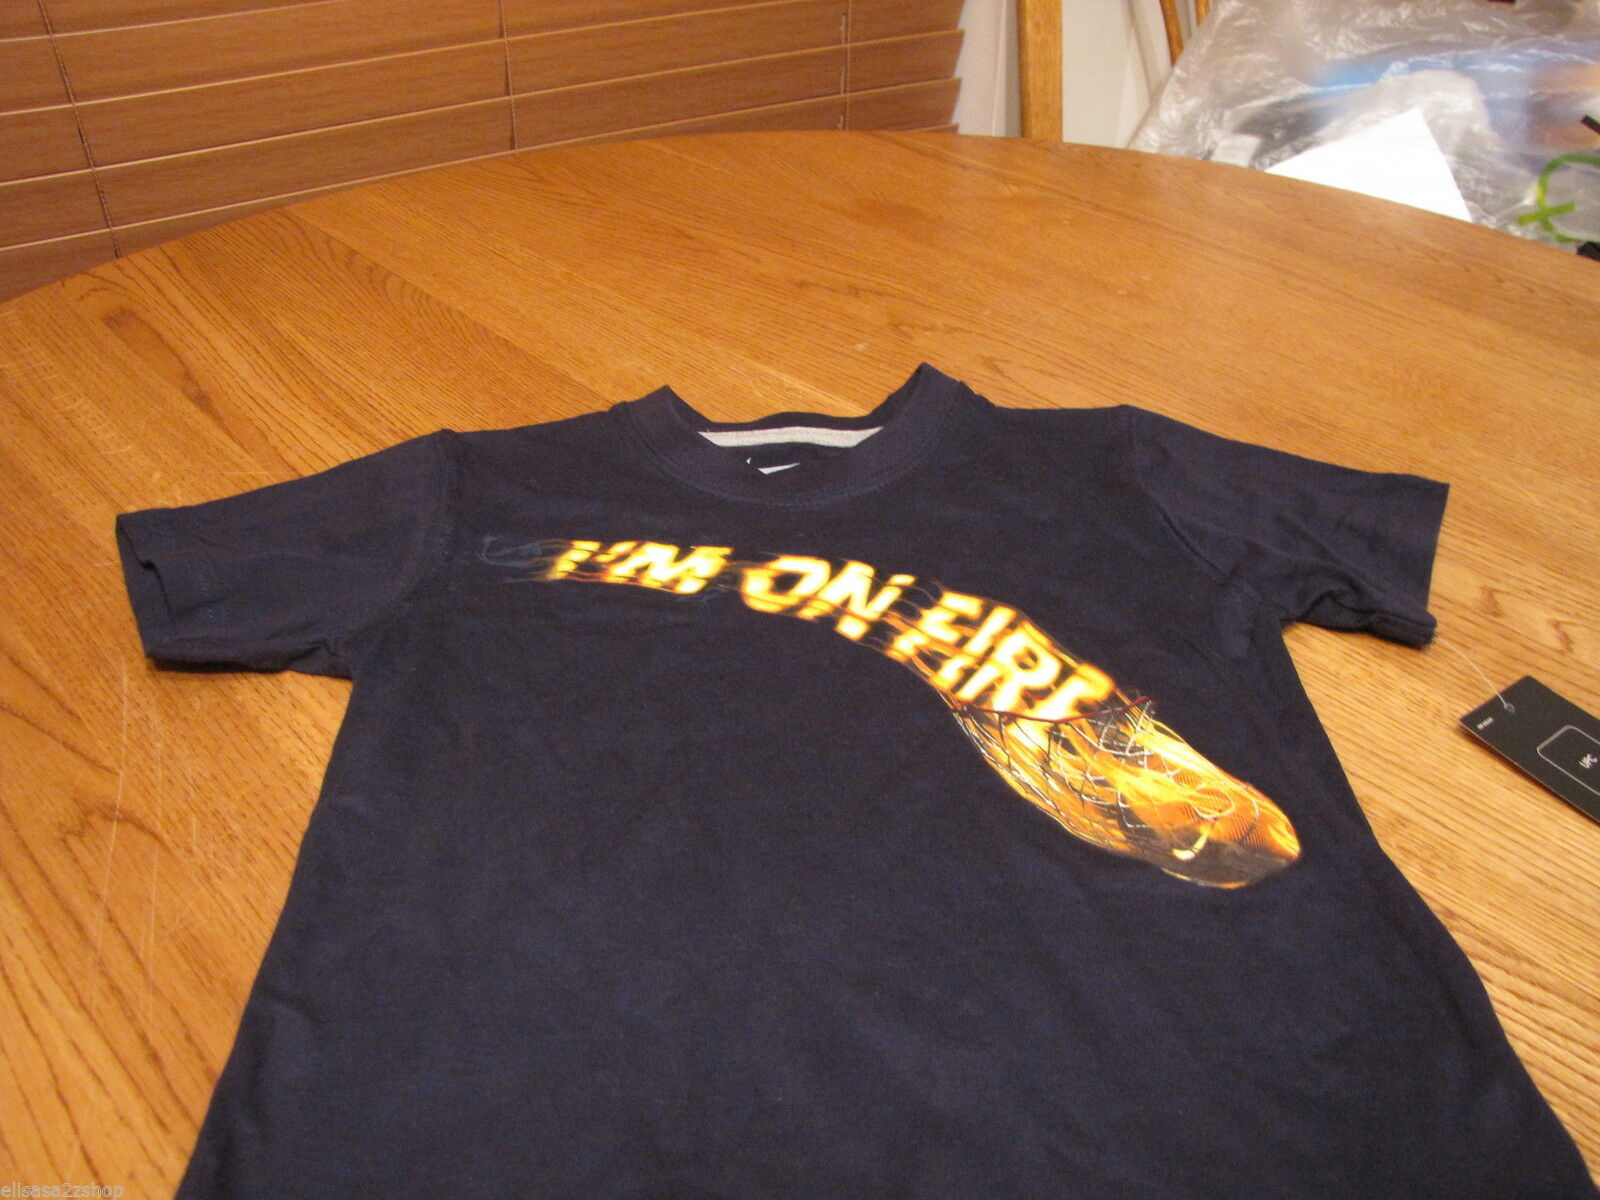 Boy's Youth 6 Nike T Shirt obsidian navy basketball TEE I'M on fire hoops NEW